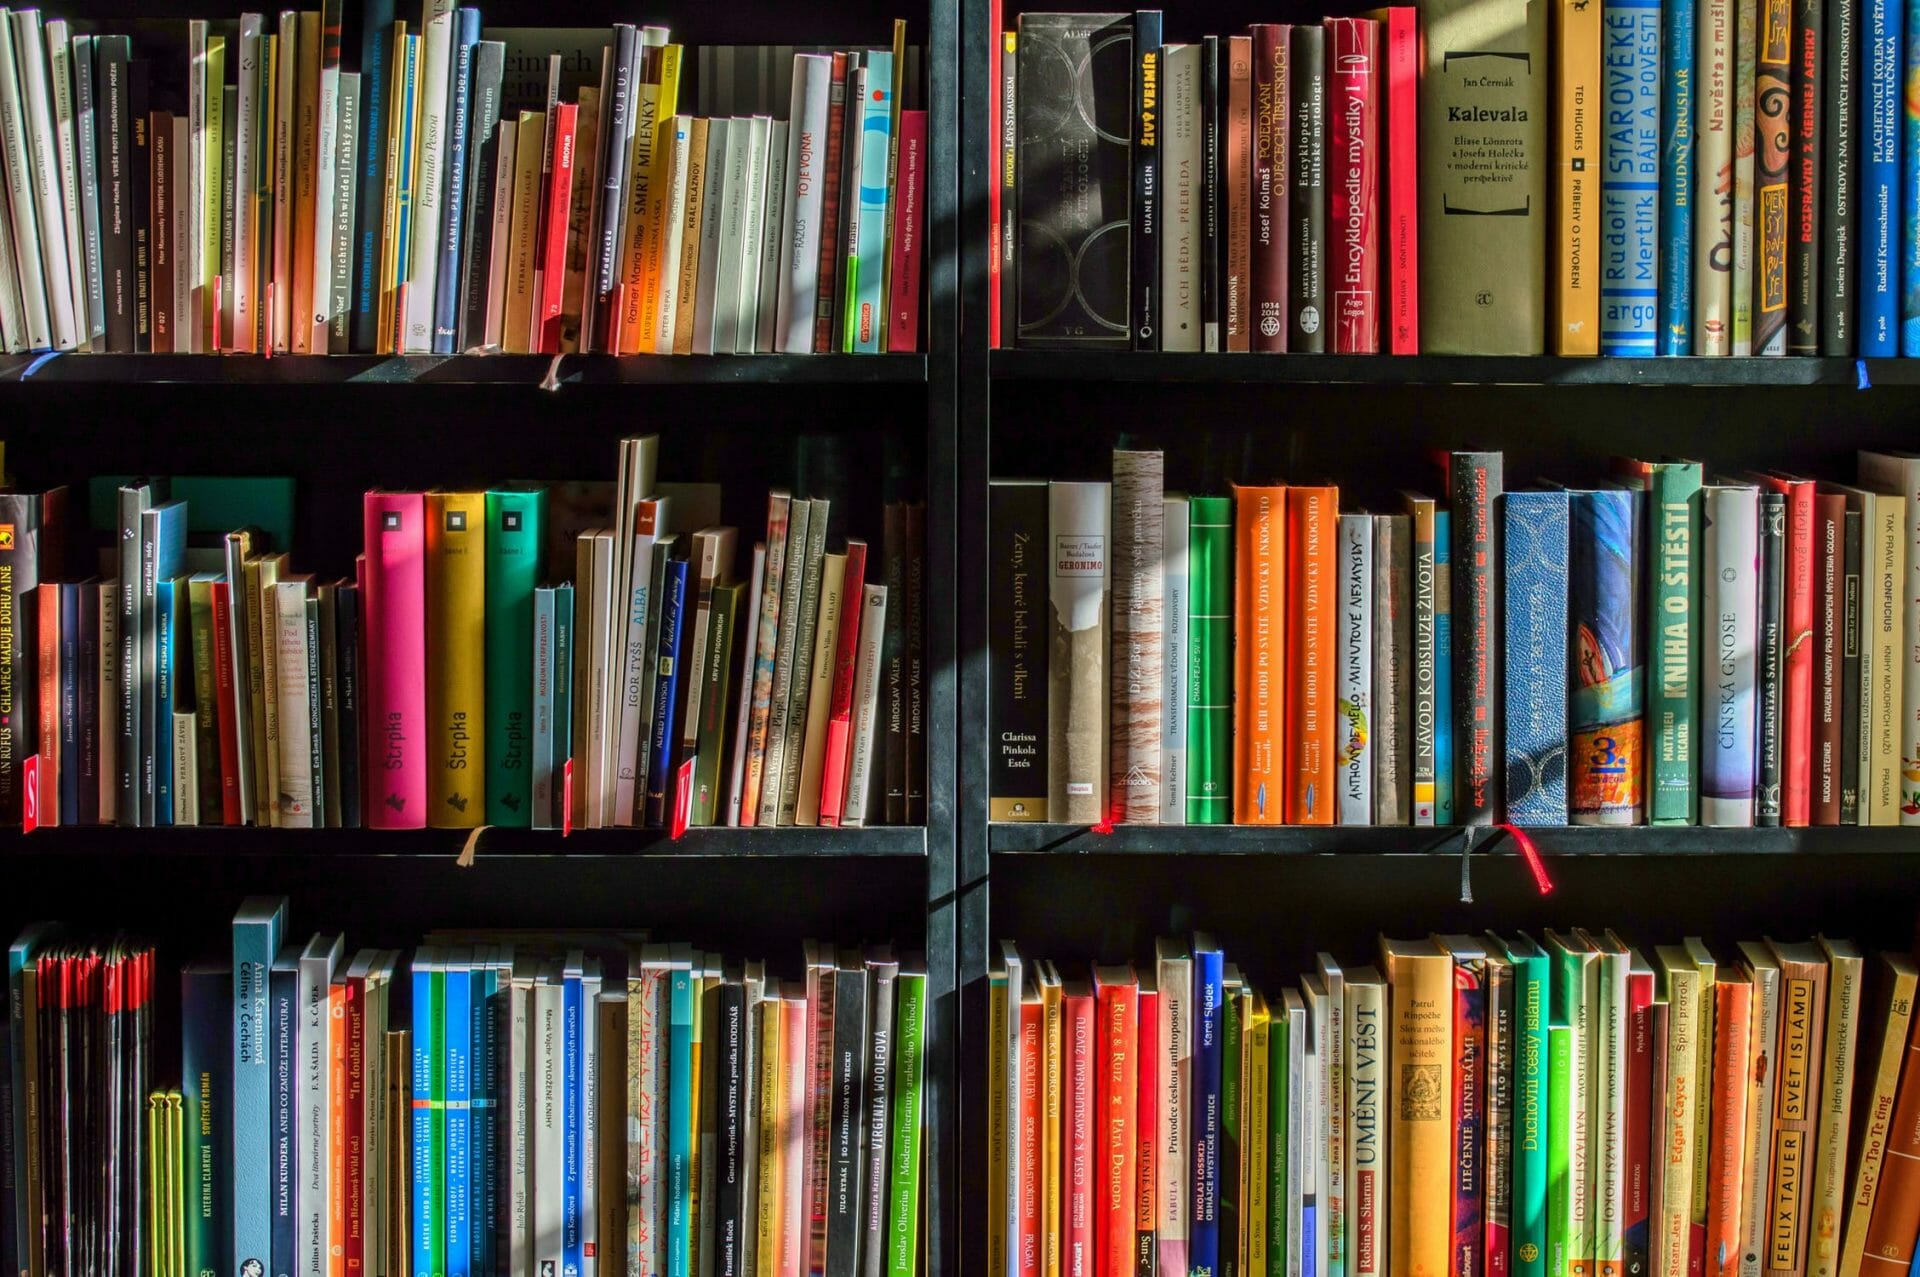 bookshelf of links and resources